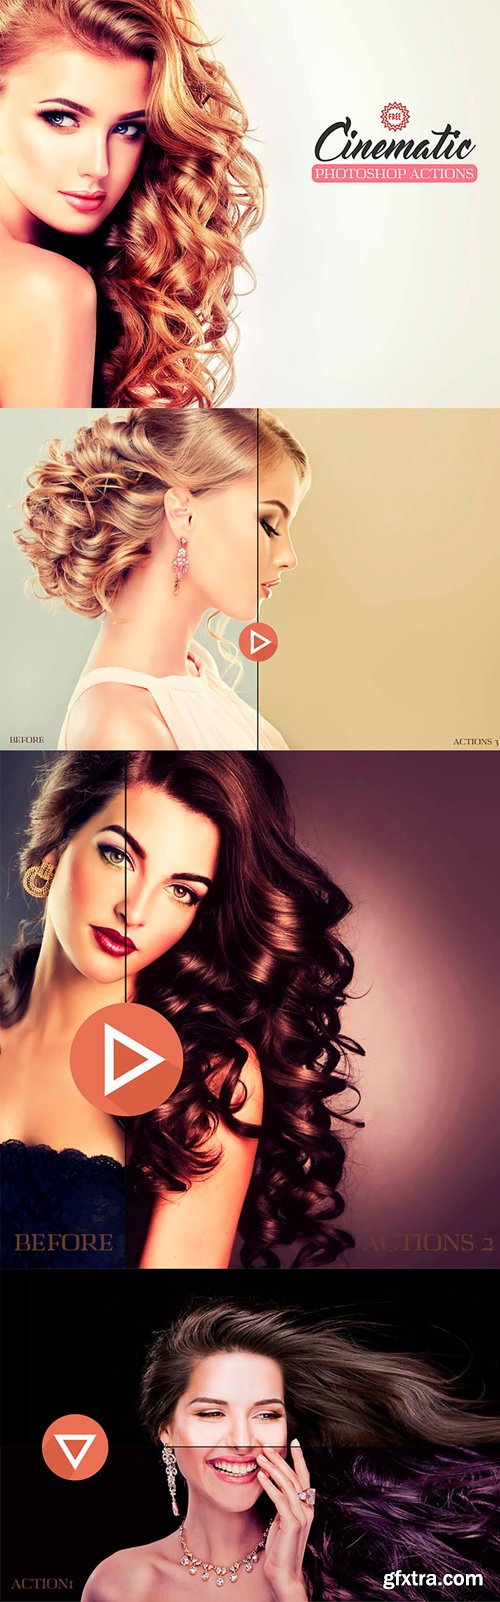 3 Cinematic Photoshop Actions